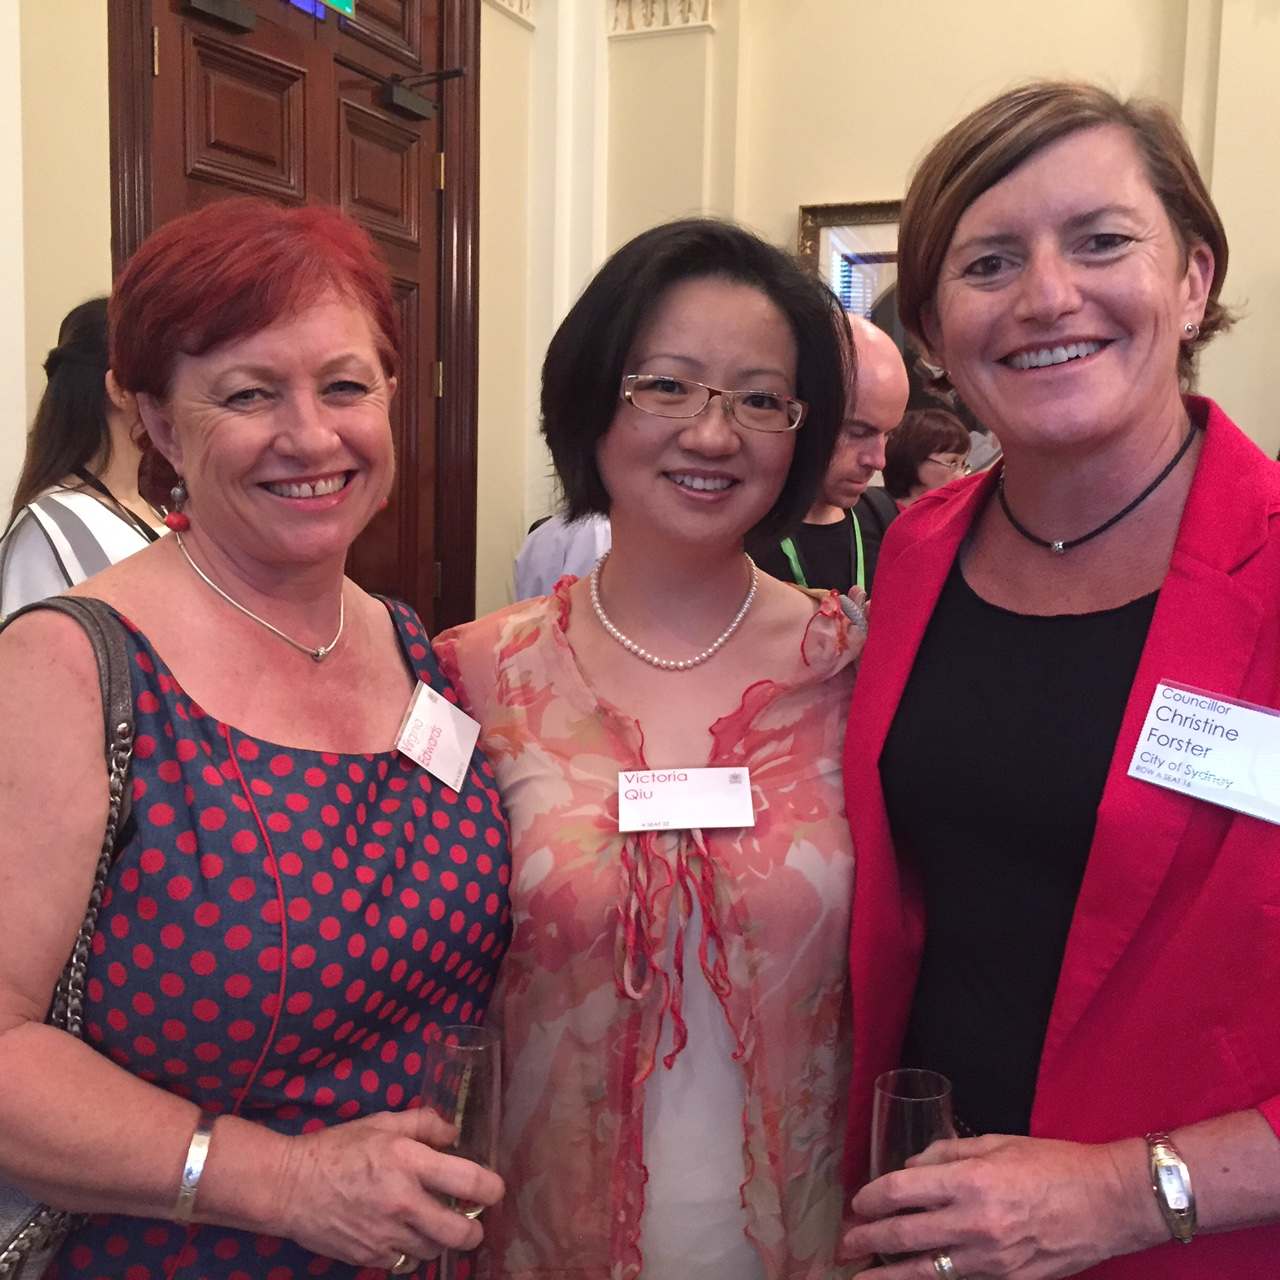 Christine Forster, Virginia Edwards & Victoria Qui @ CNY Reception 22-02-15